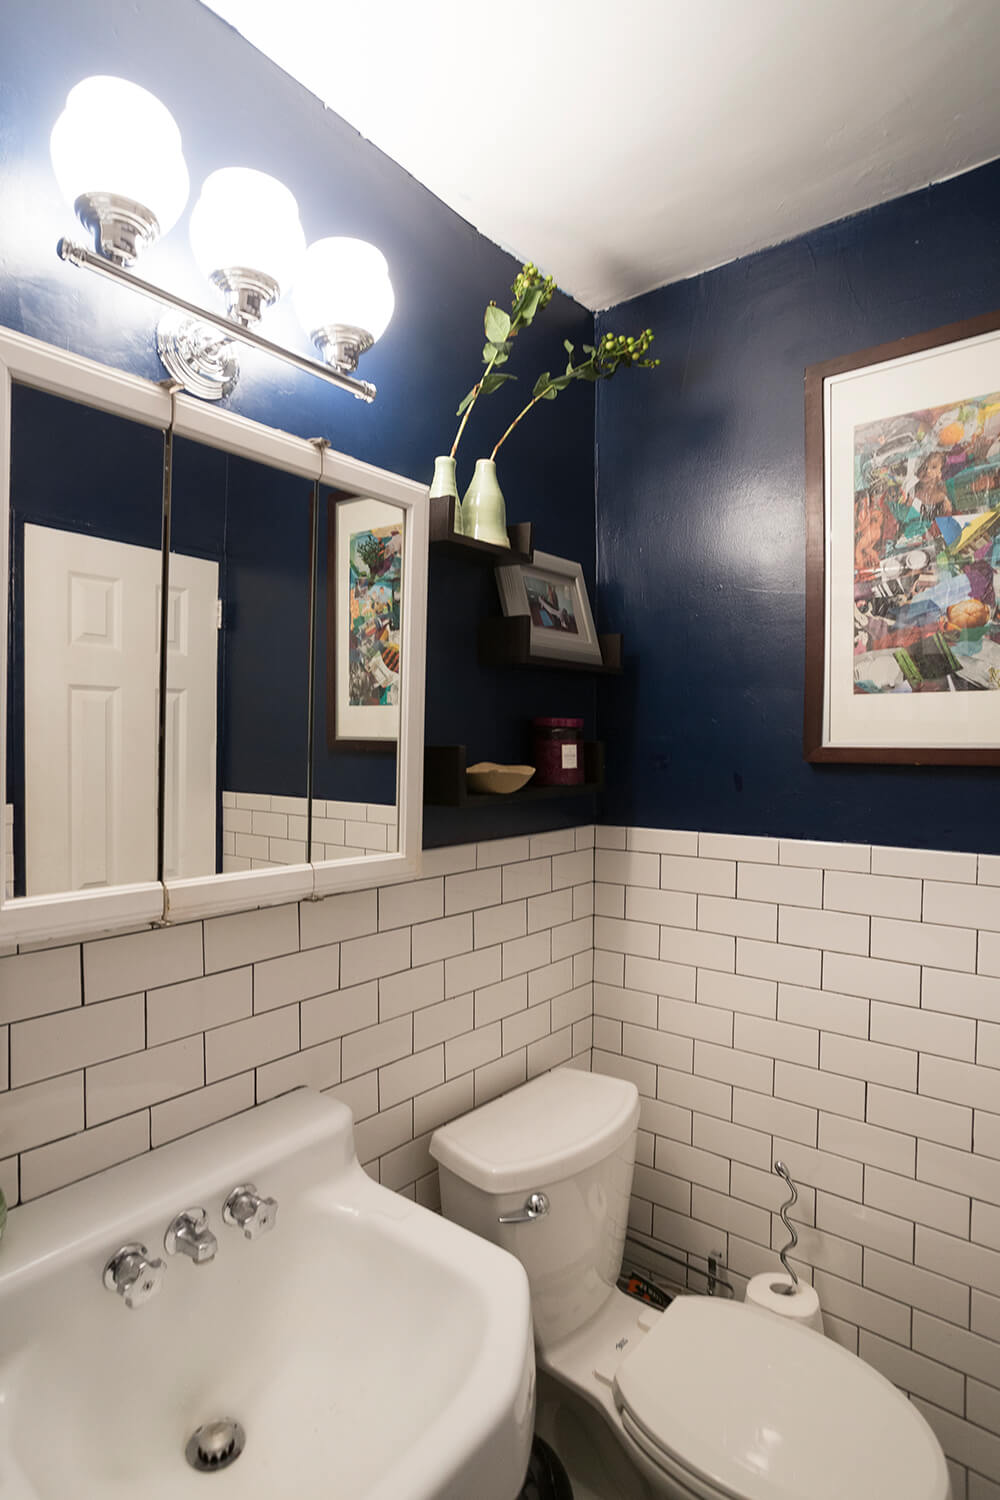 A modern bathroom design of blue walls and white subway tile